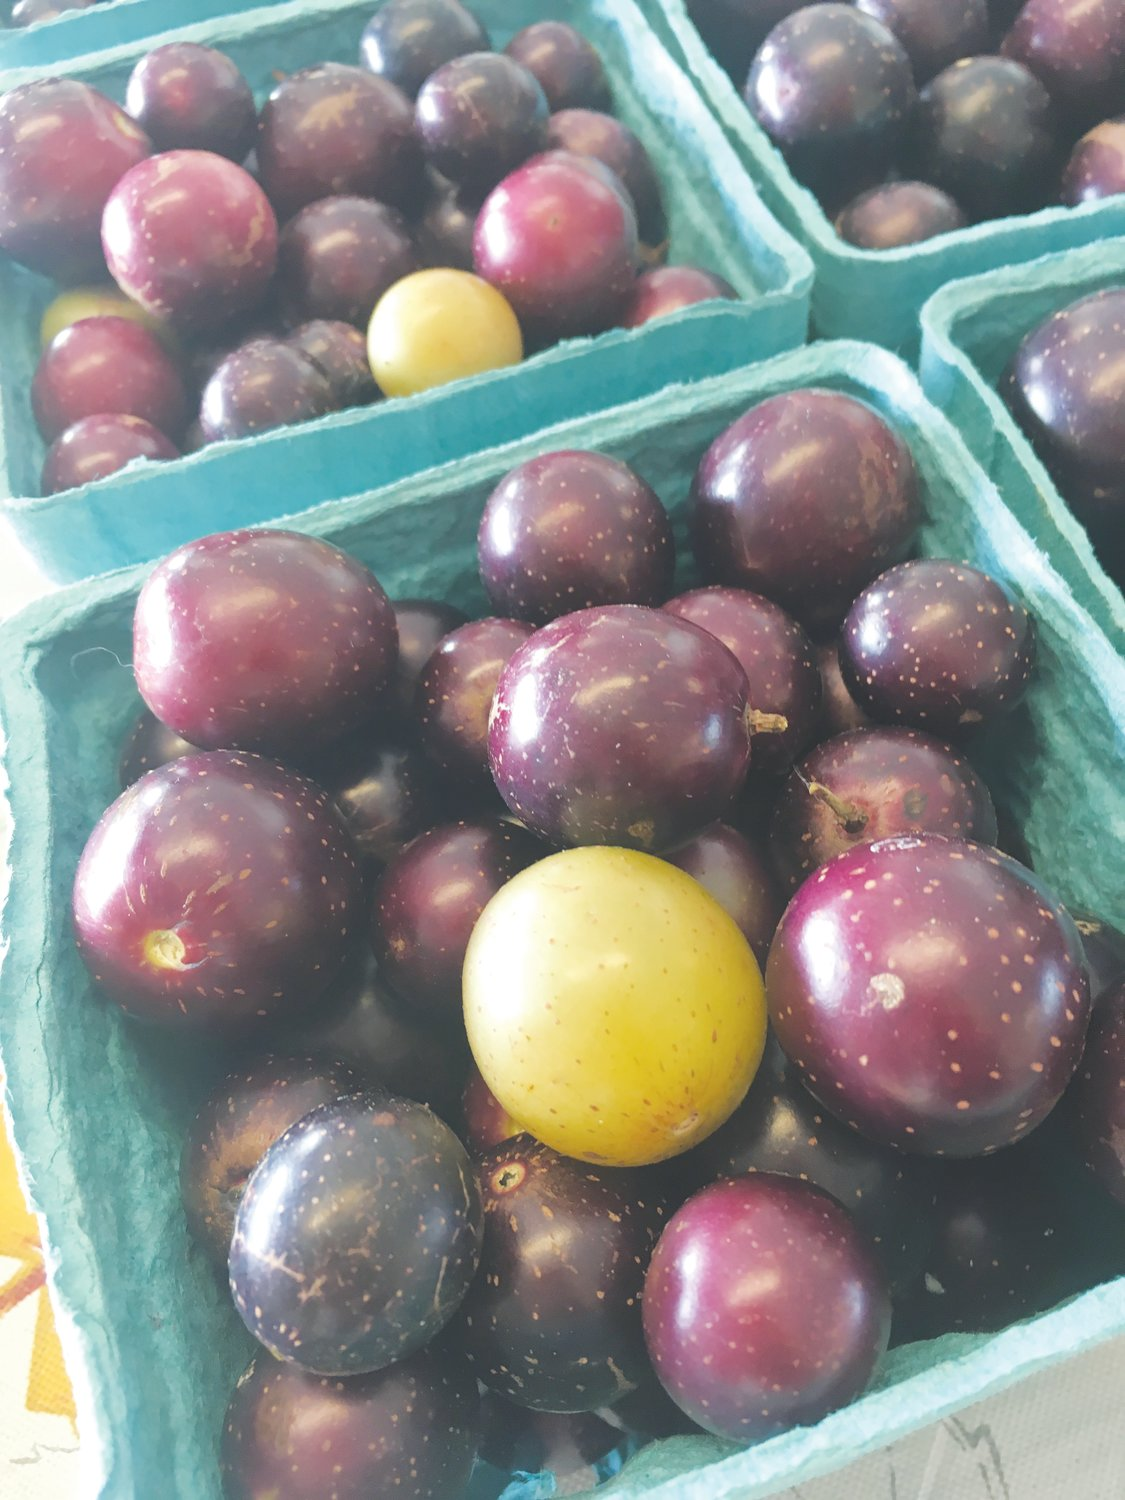 Muscadine grapes, shown here, will be available at the Farm Credit Farmers Market in September.